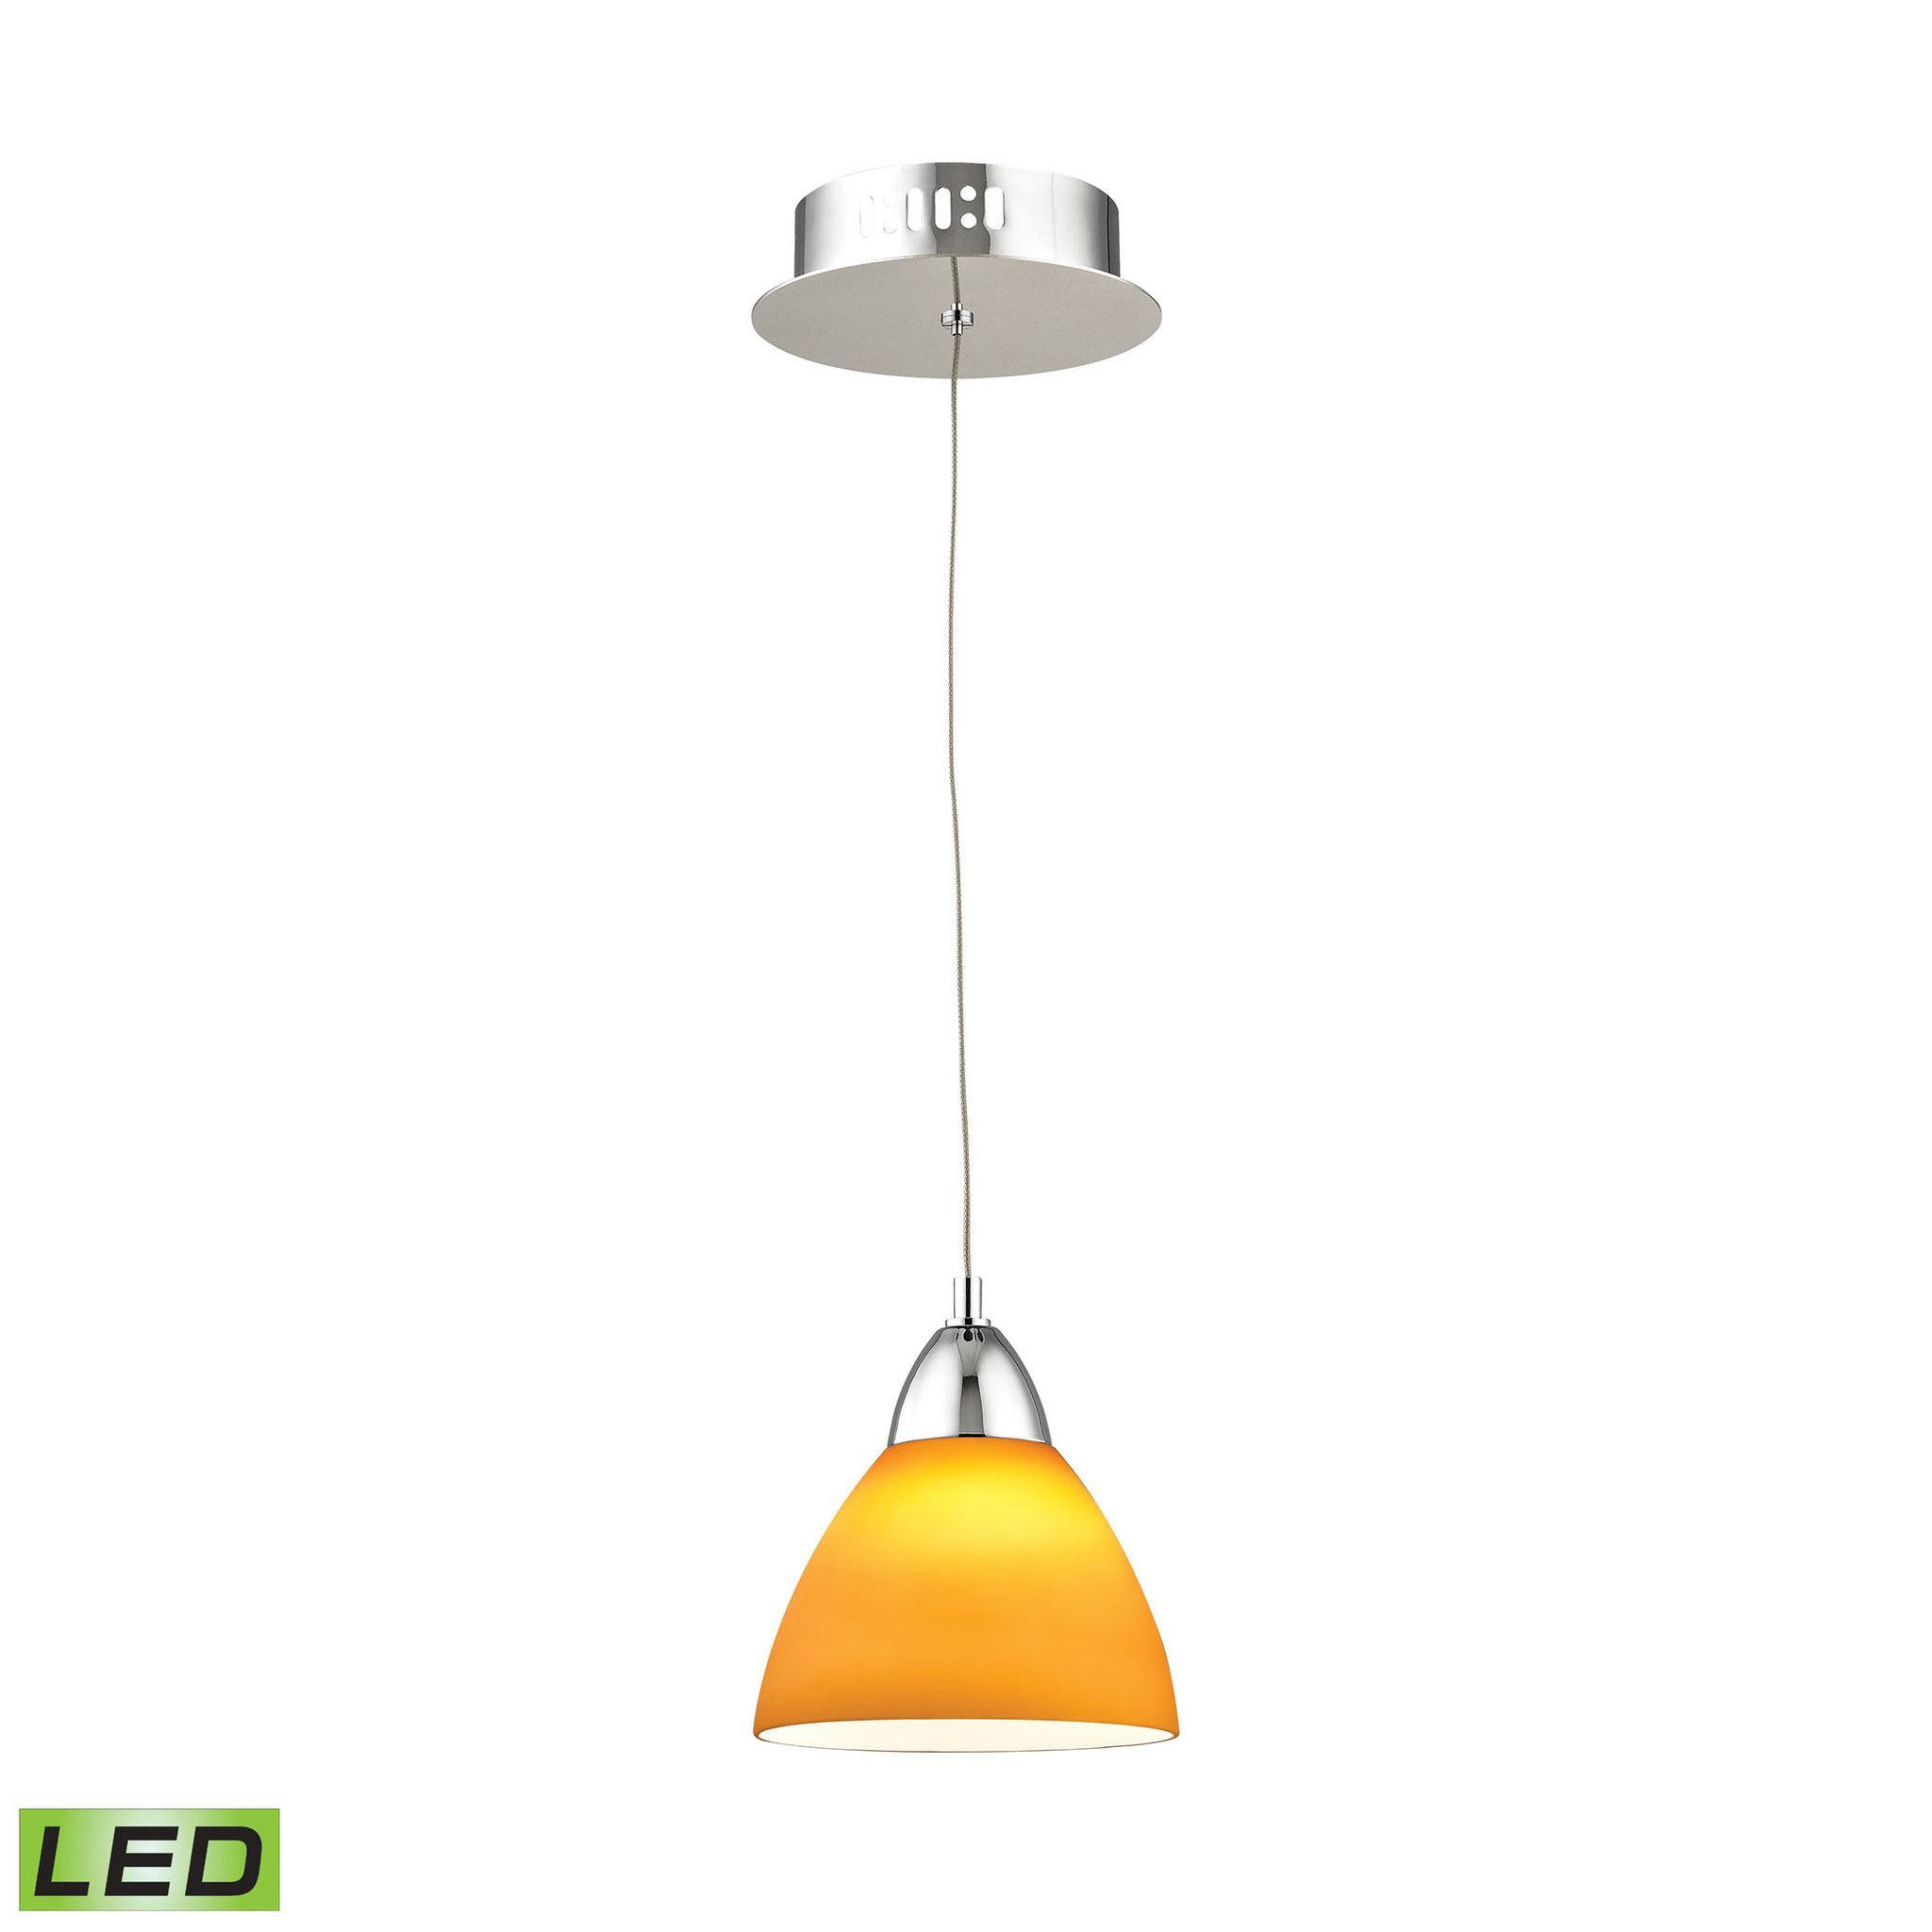 Piatto light led pendant in chrome with yellow glass products